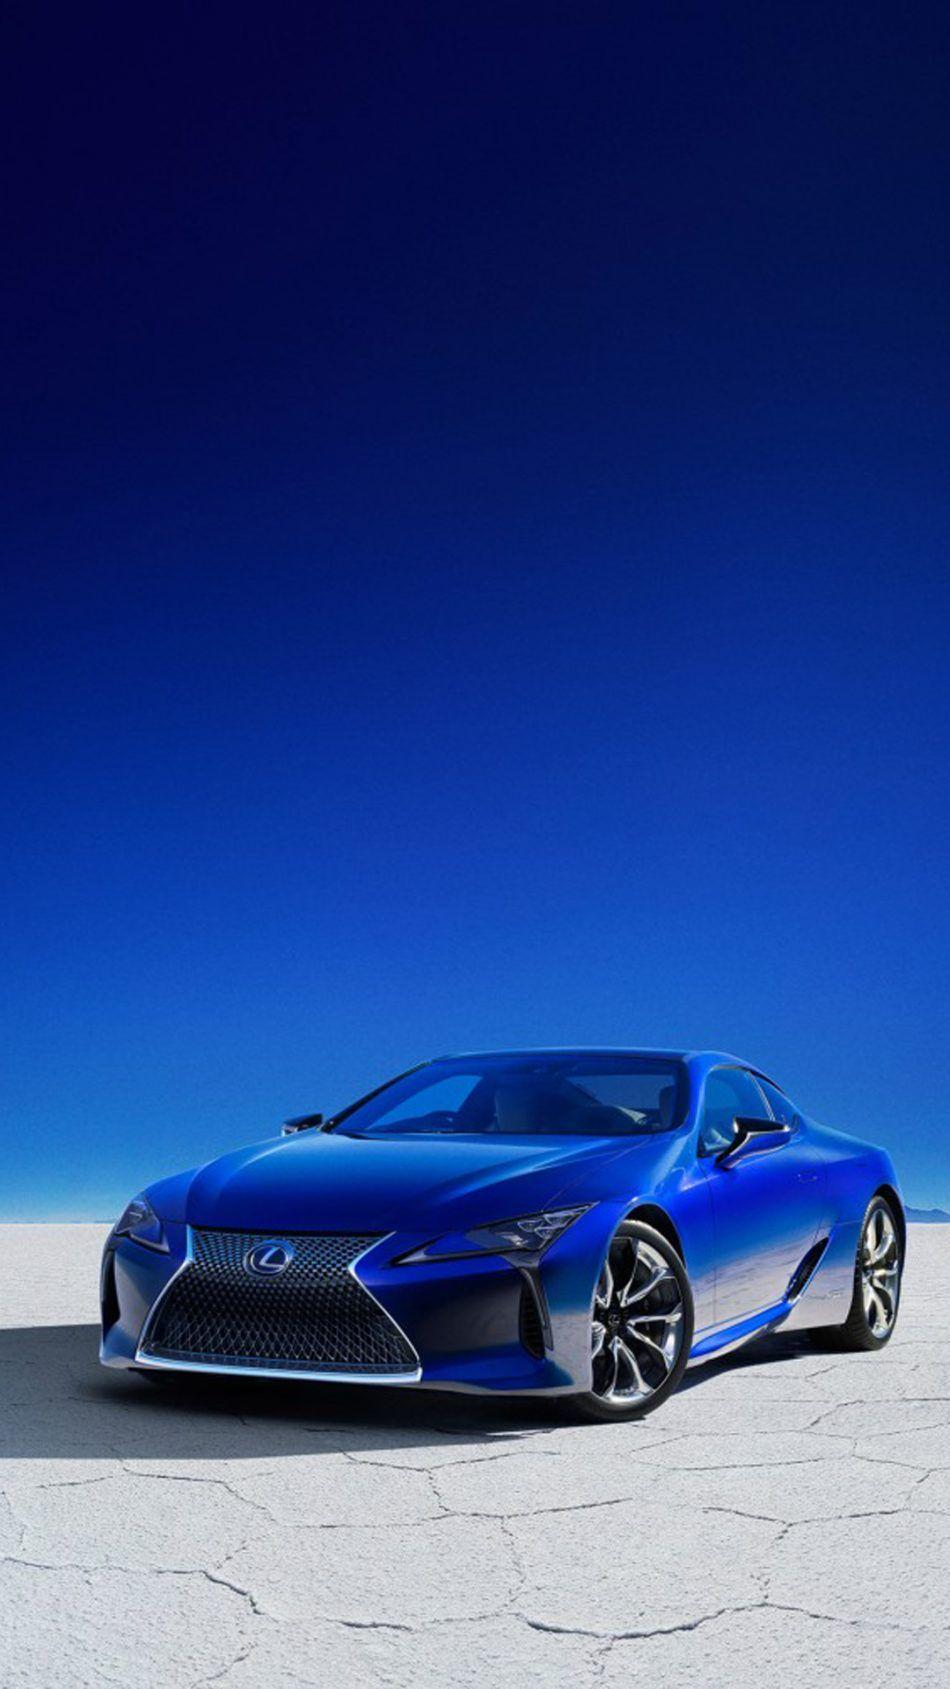 Lexus LC 500H Structural Blue Edition | Car Wallpapers | Lexus cars ...